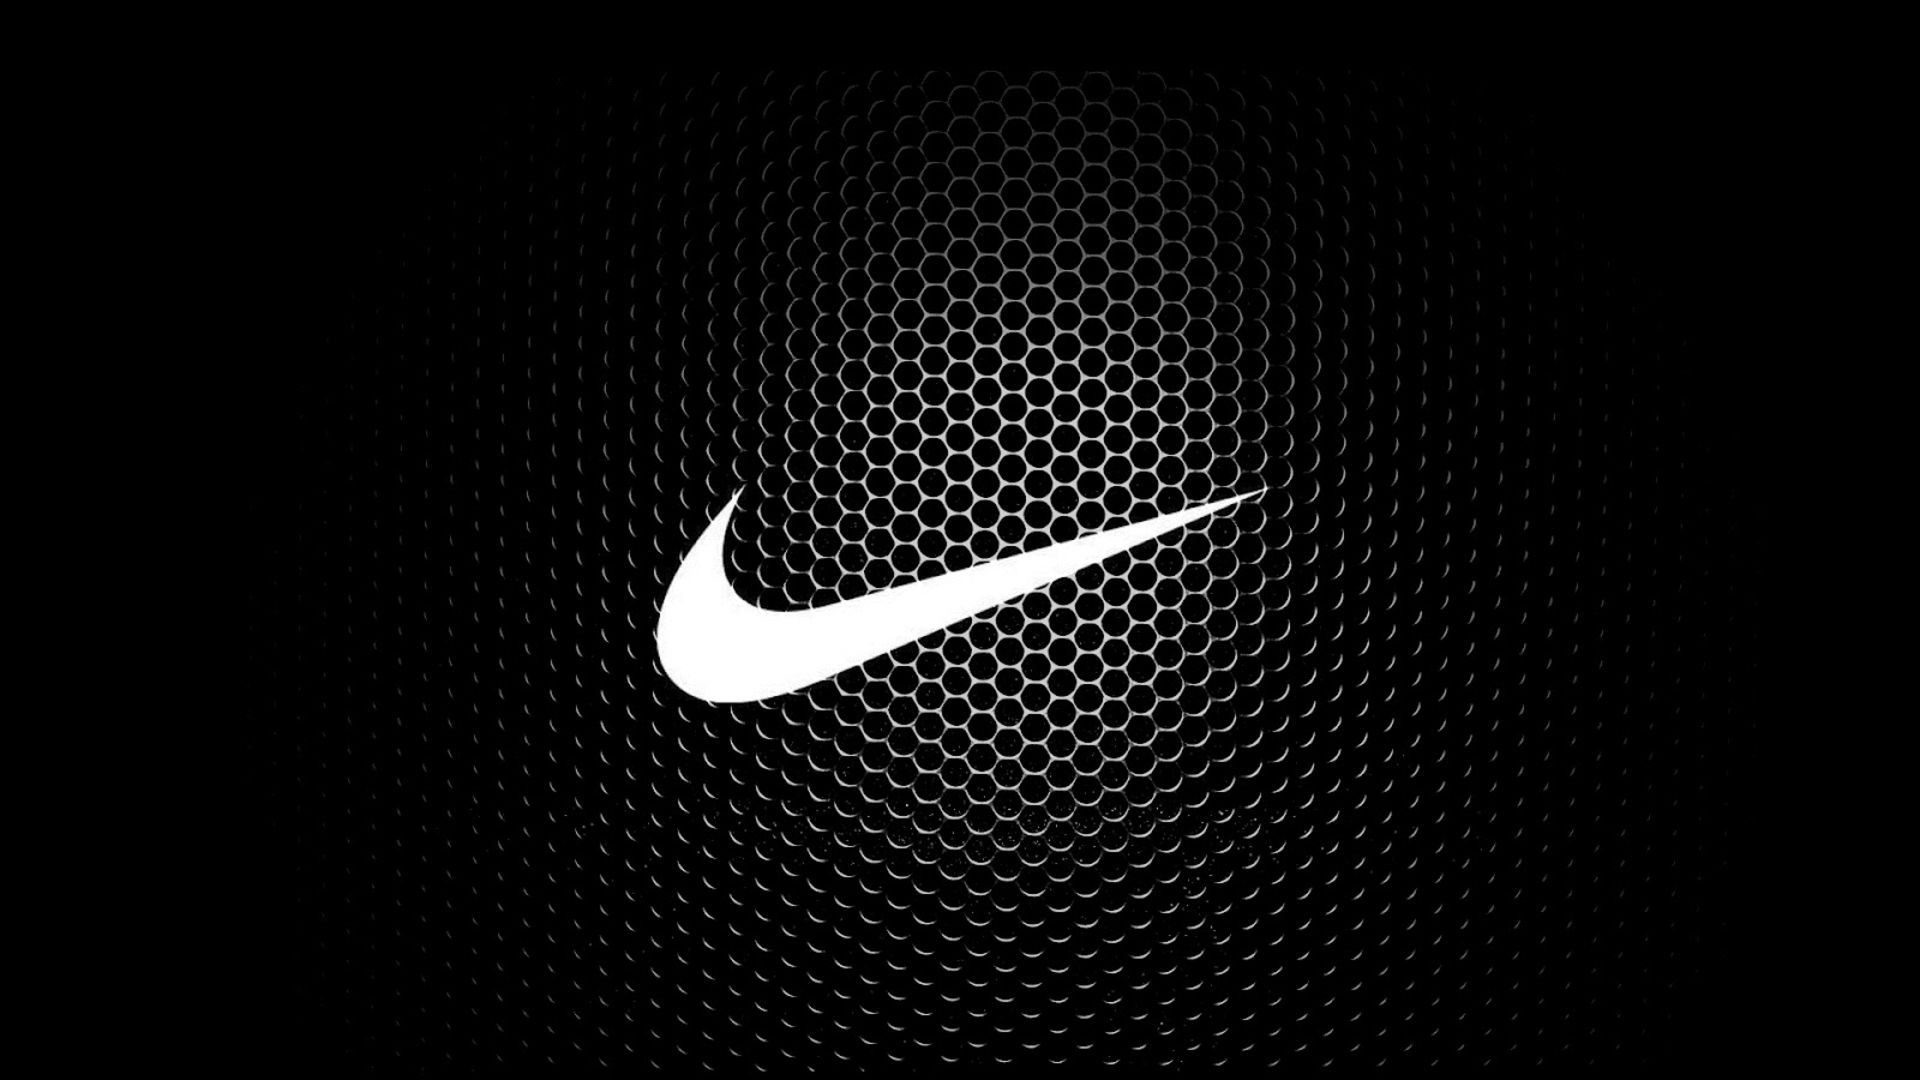 Nike Wallpaper HD For your computer